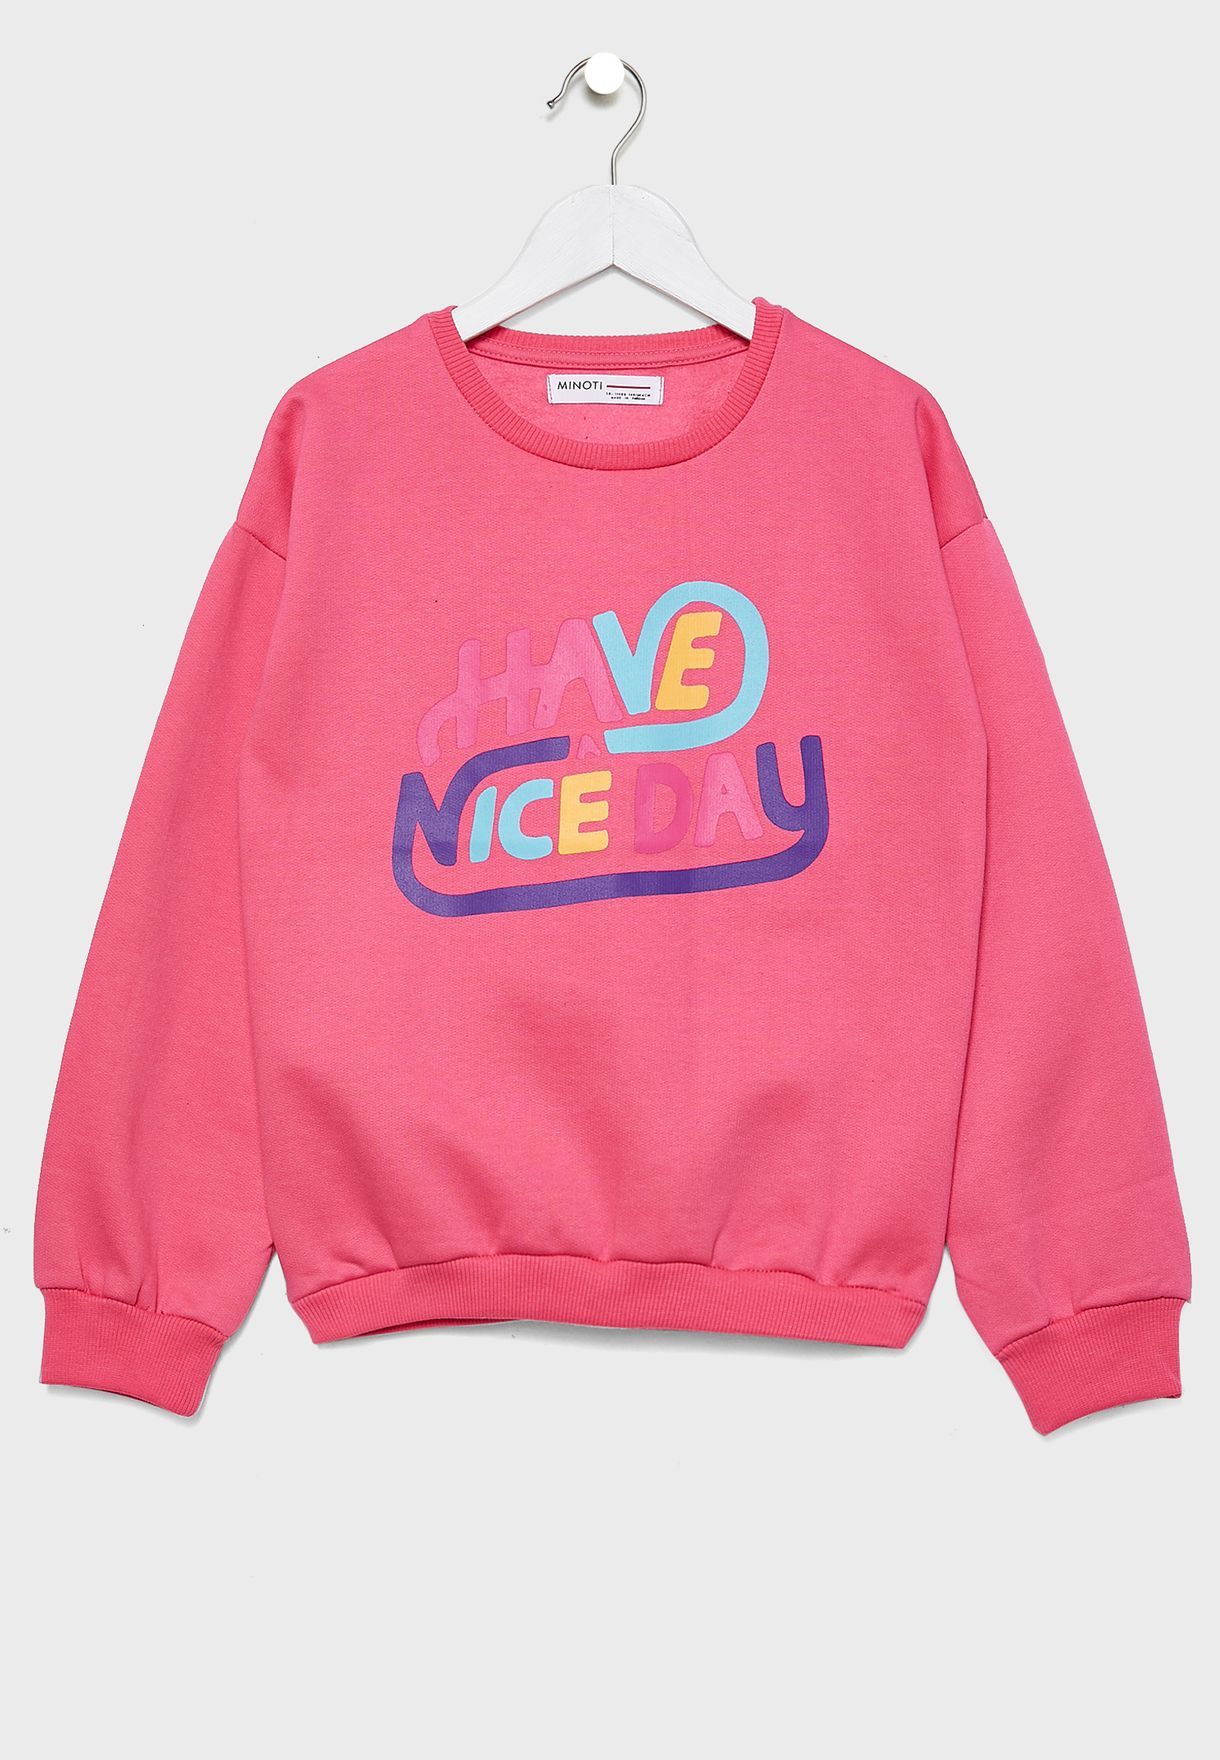 Teen Nice Day Sweatshirt